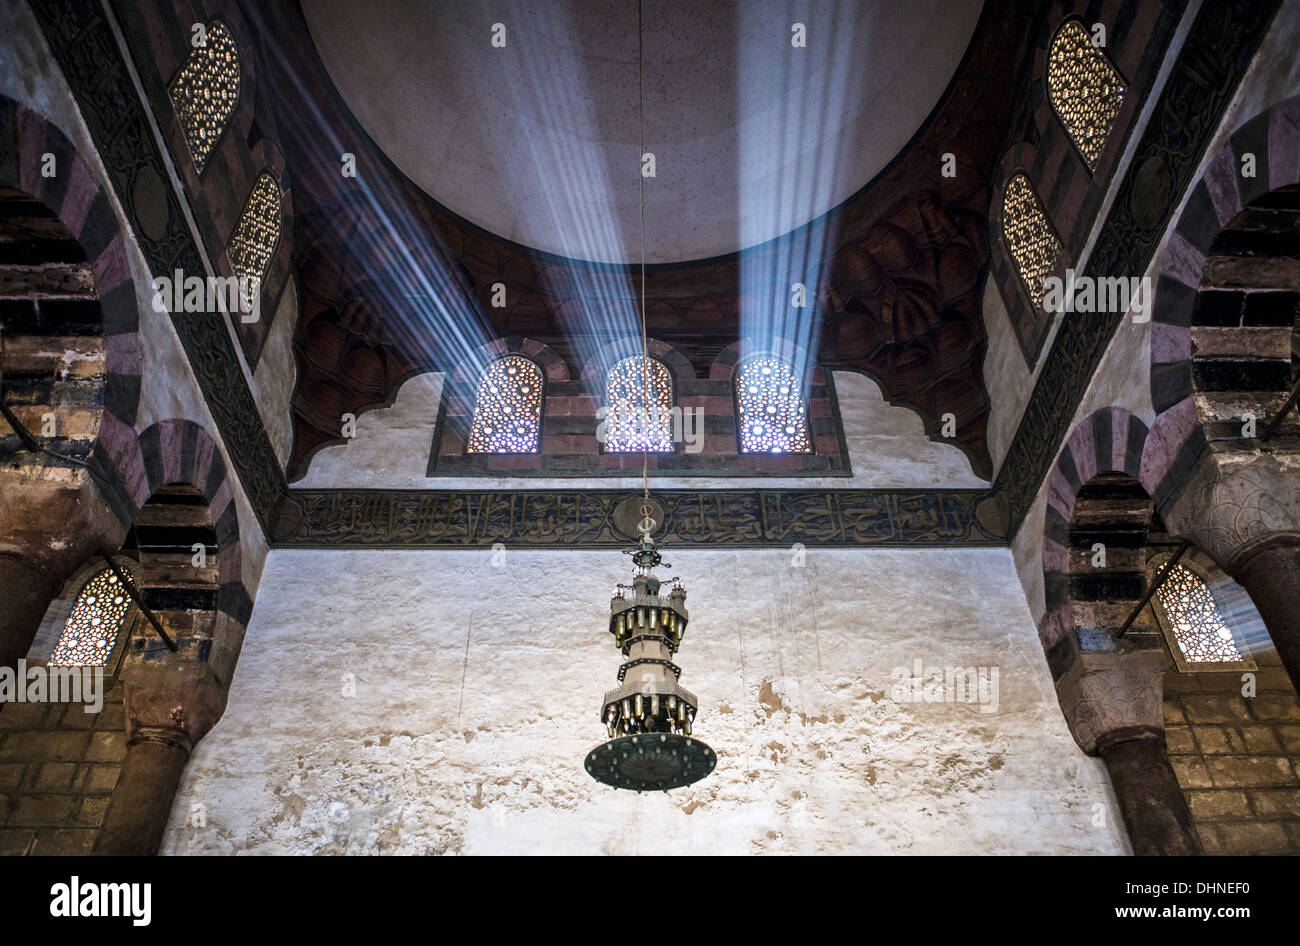 Africa, Egypt, Cairo, Salah Al Din citadel, the Qalawoon mosque - Stock Image